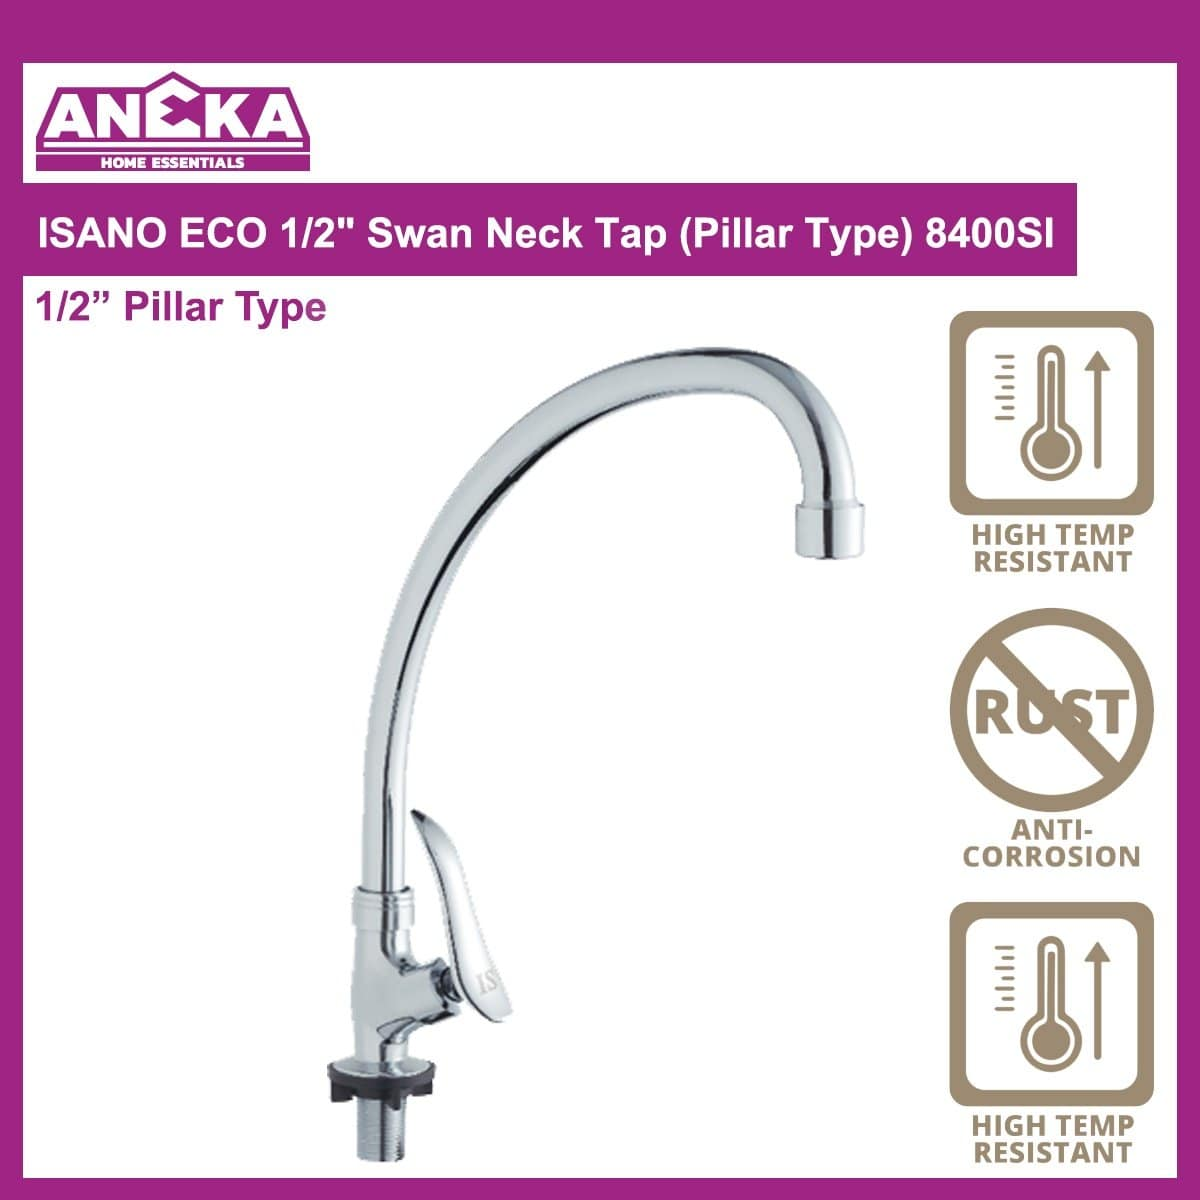 "ISANO ECO 1/2"" Swan Neck Tap (Pillar Type) 8400SI"